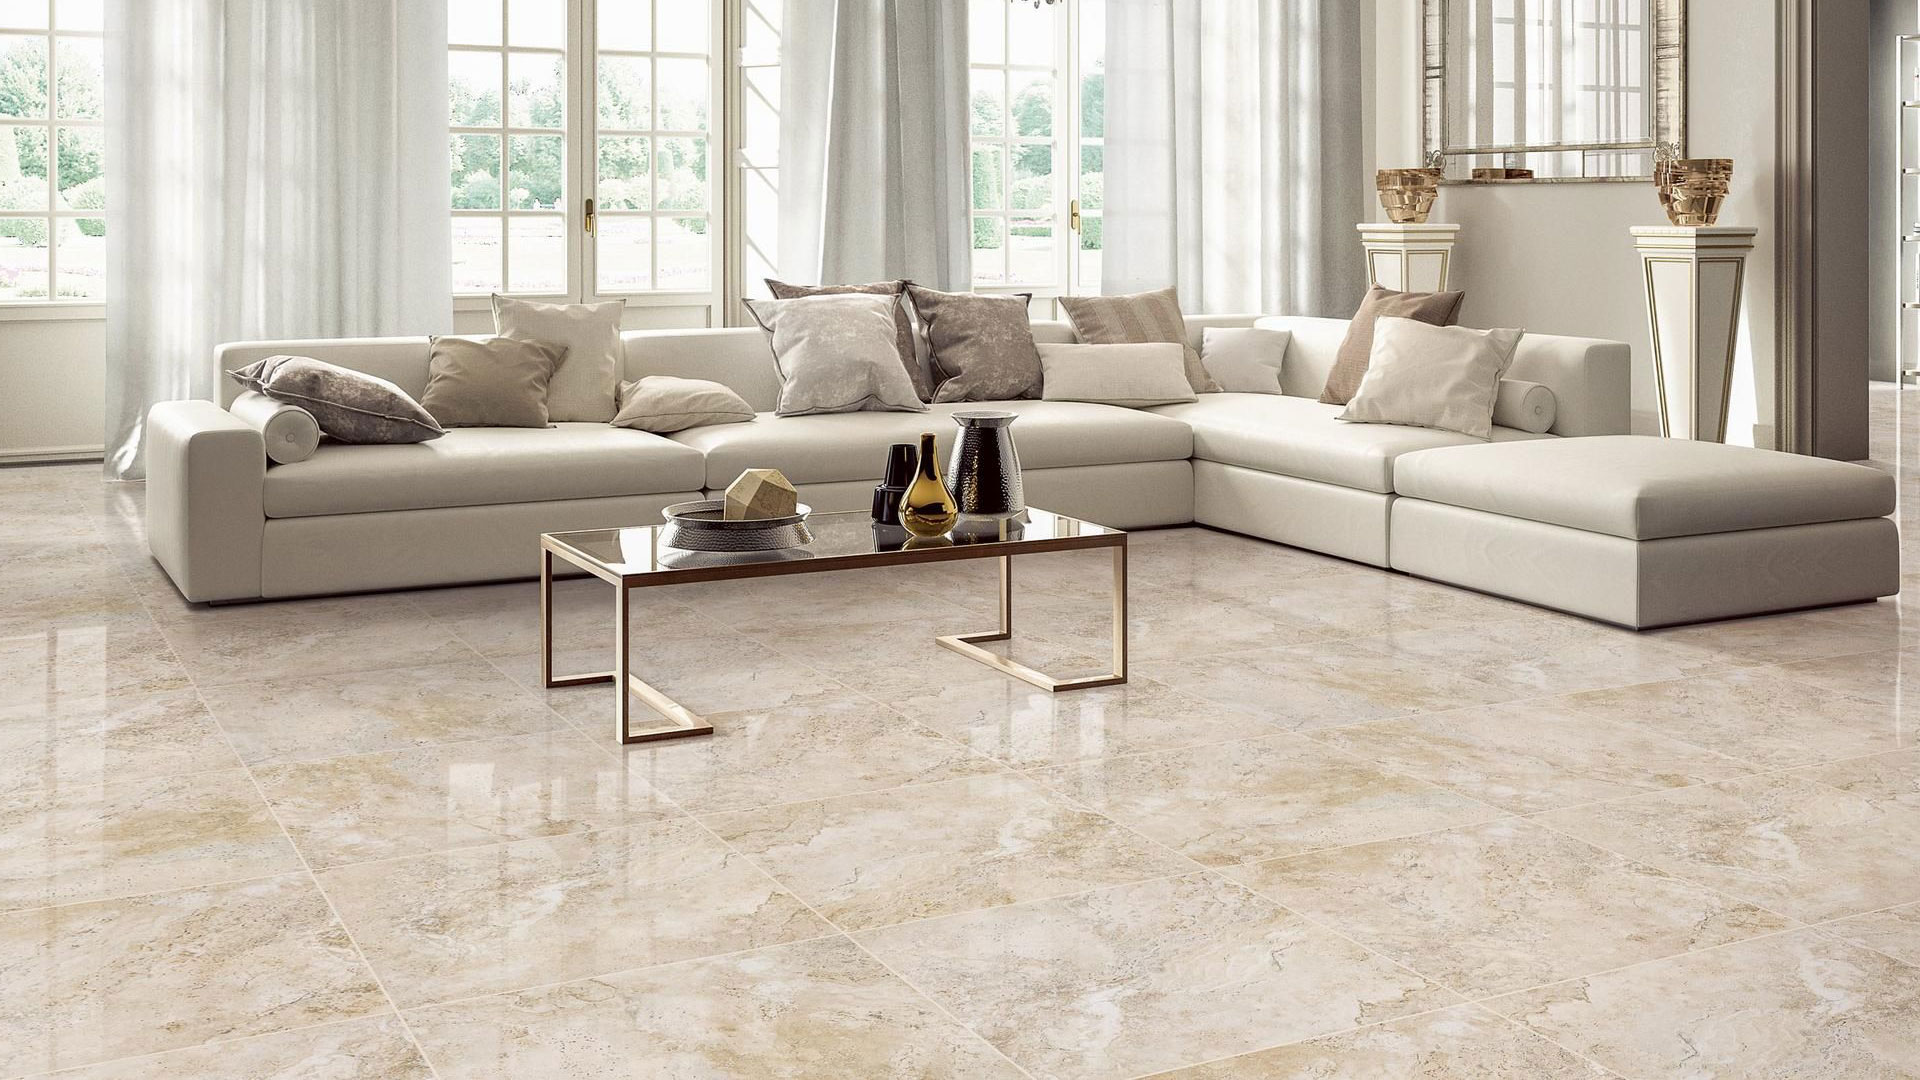 Porcelain Tiles for your Home Remodeling project in Inverness, FL